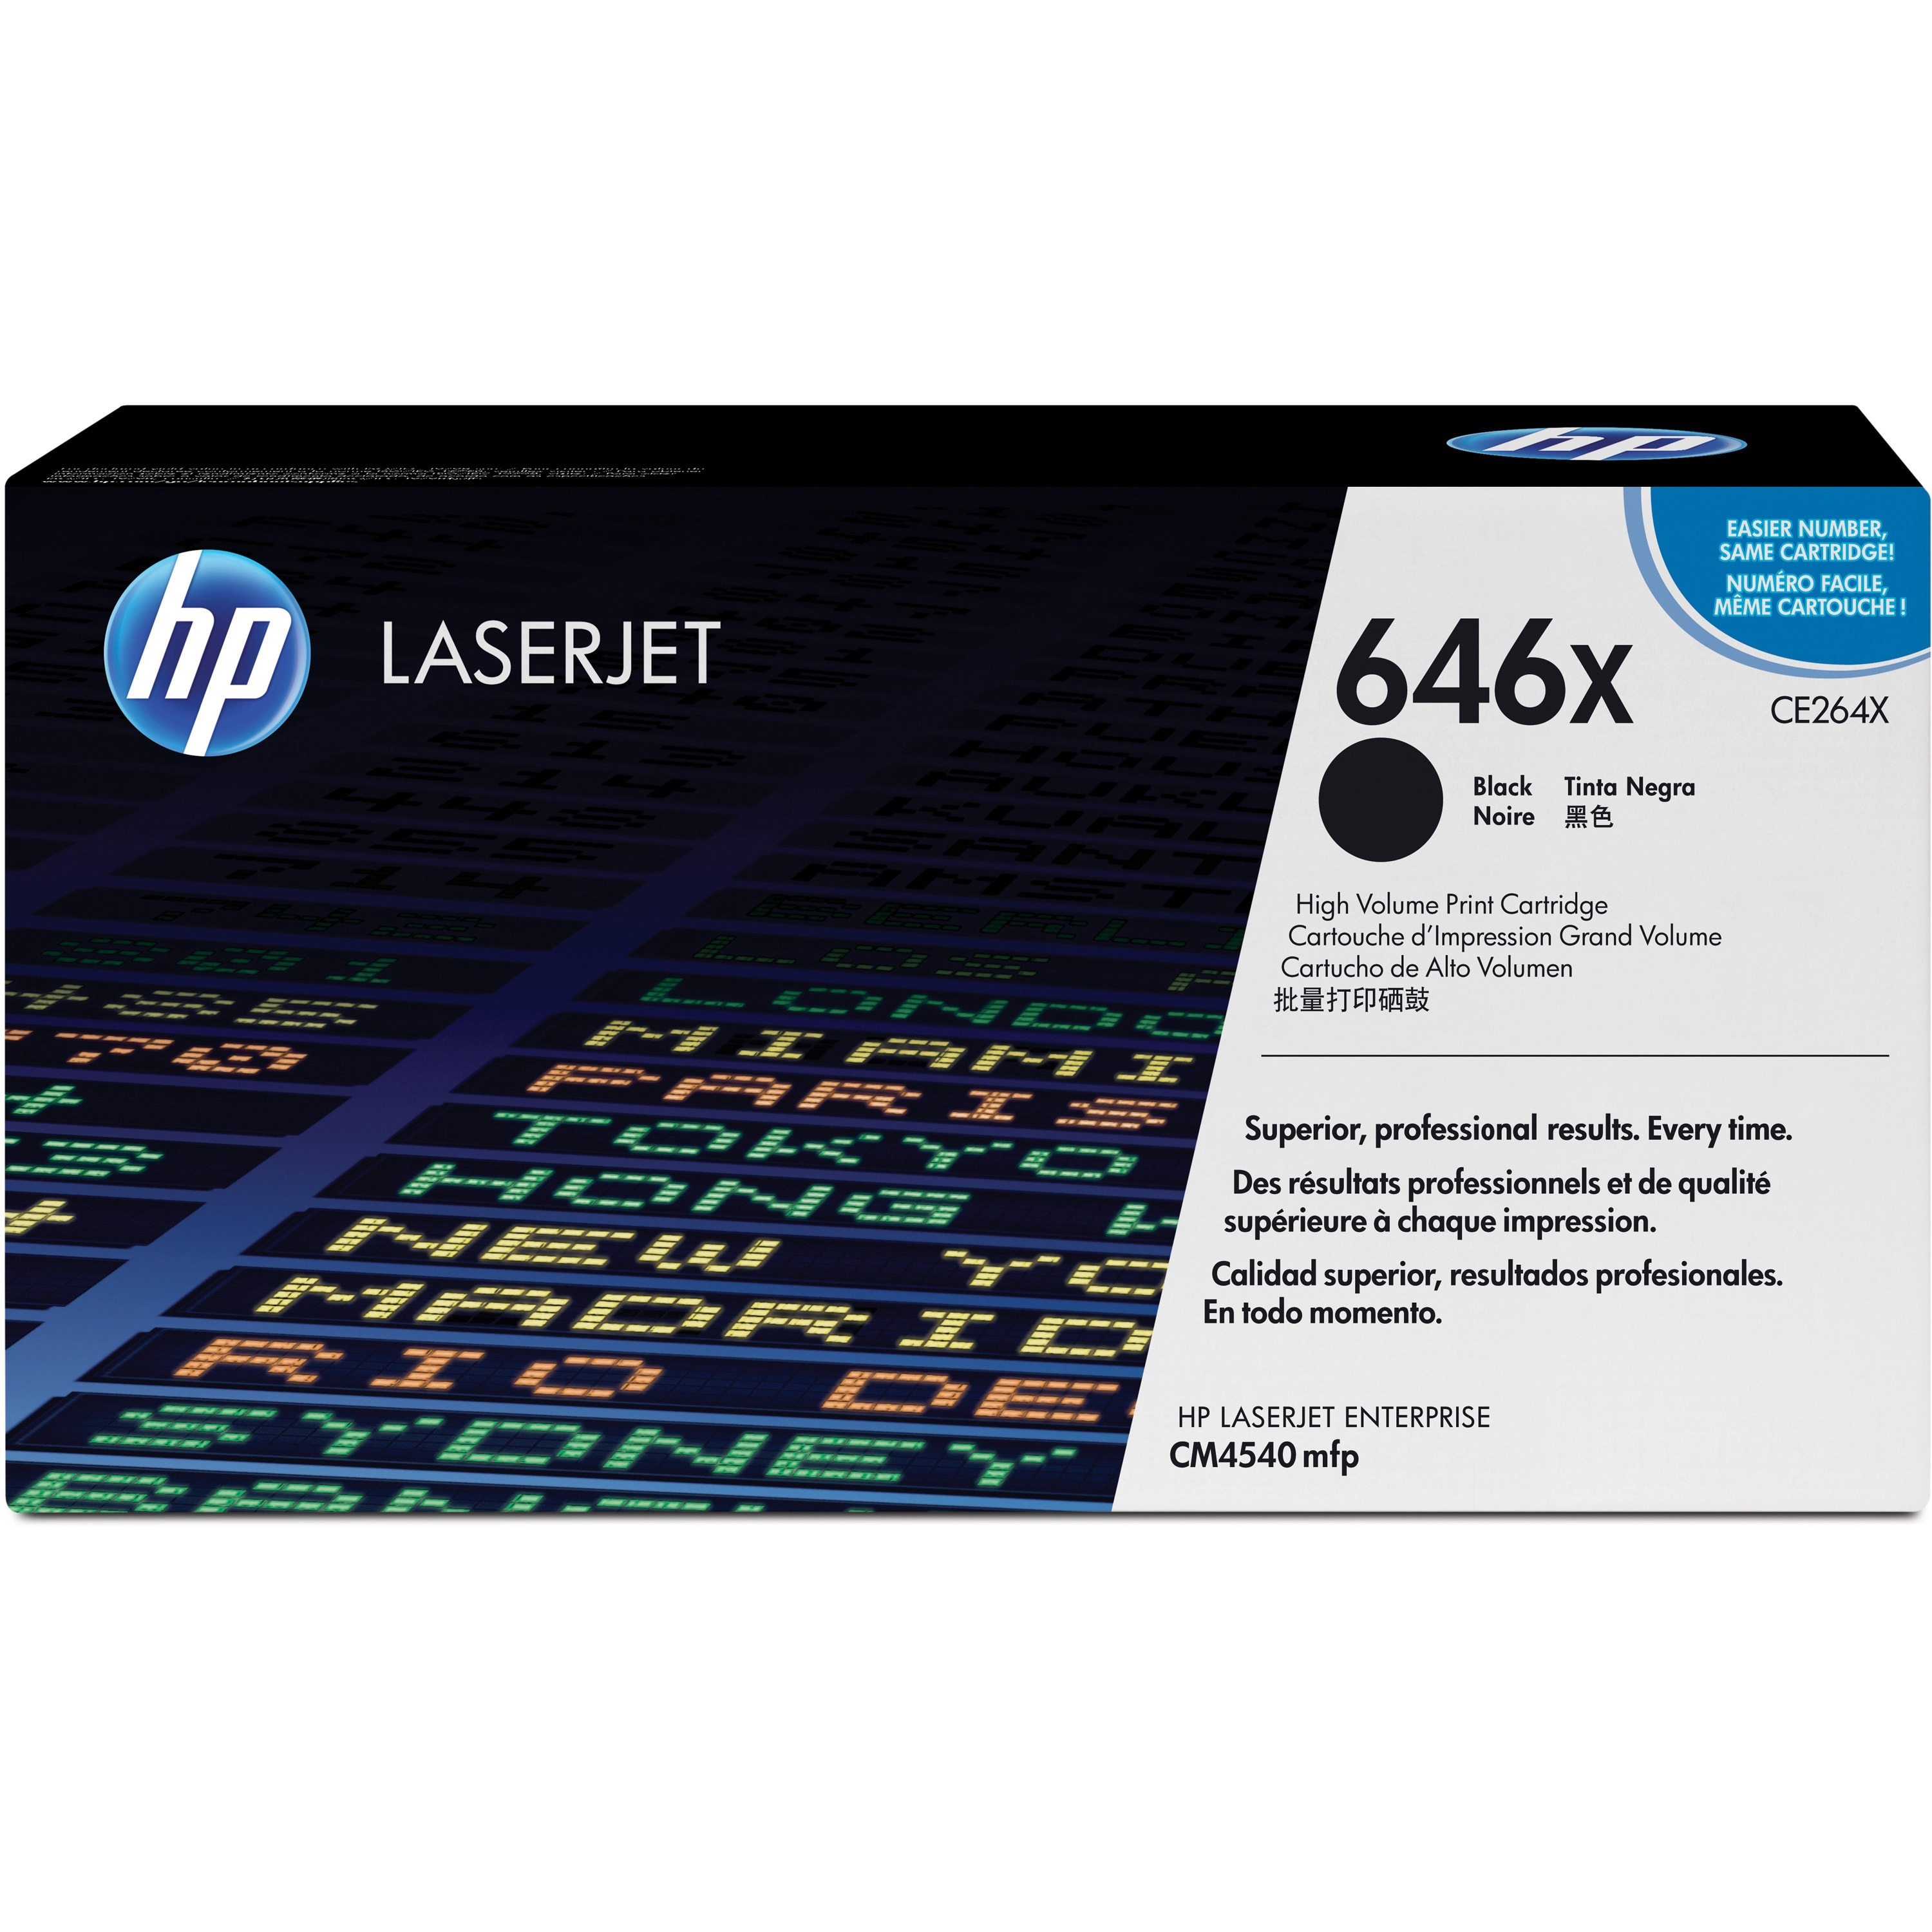 HP 646X Toner Cartridge - Black